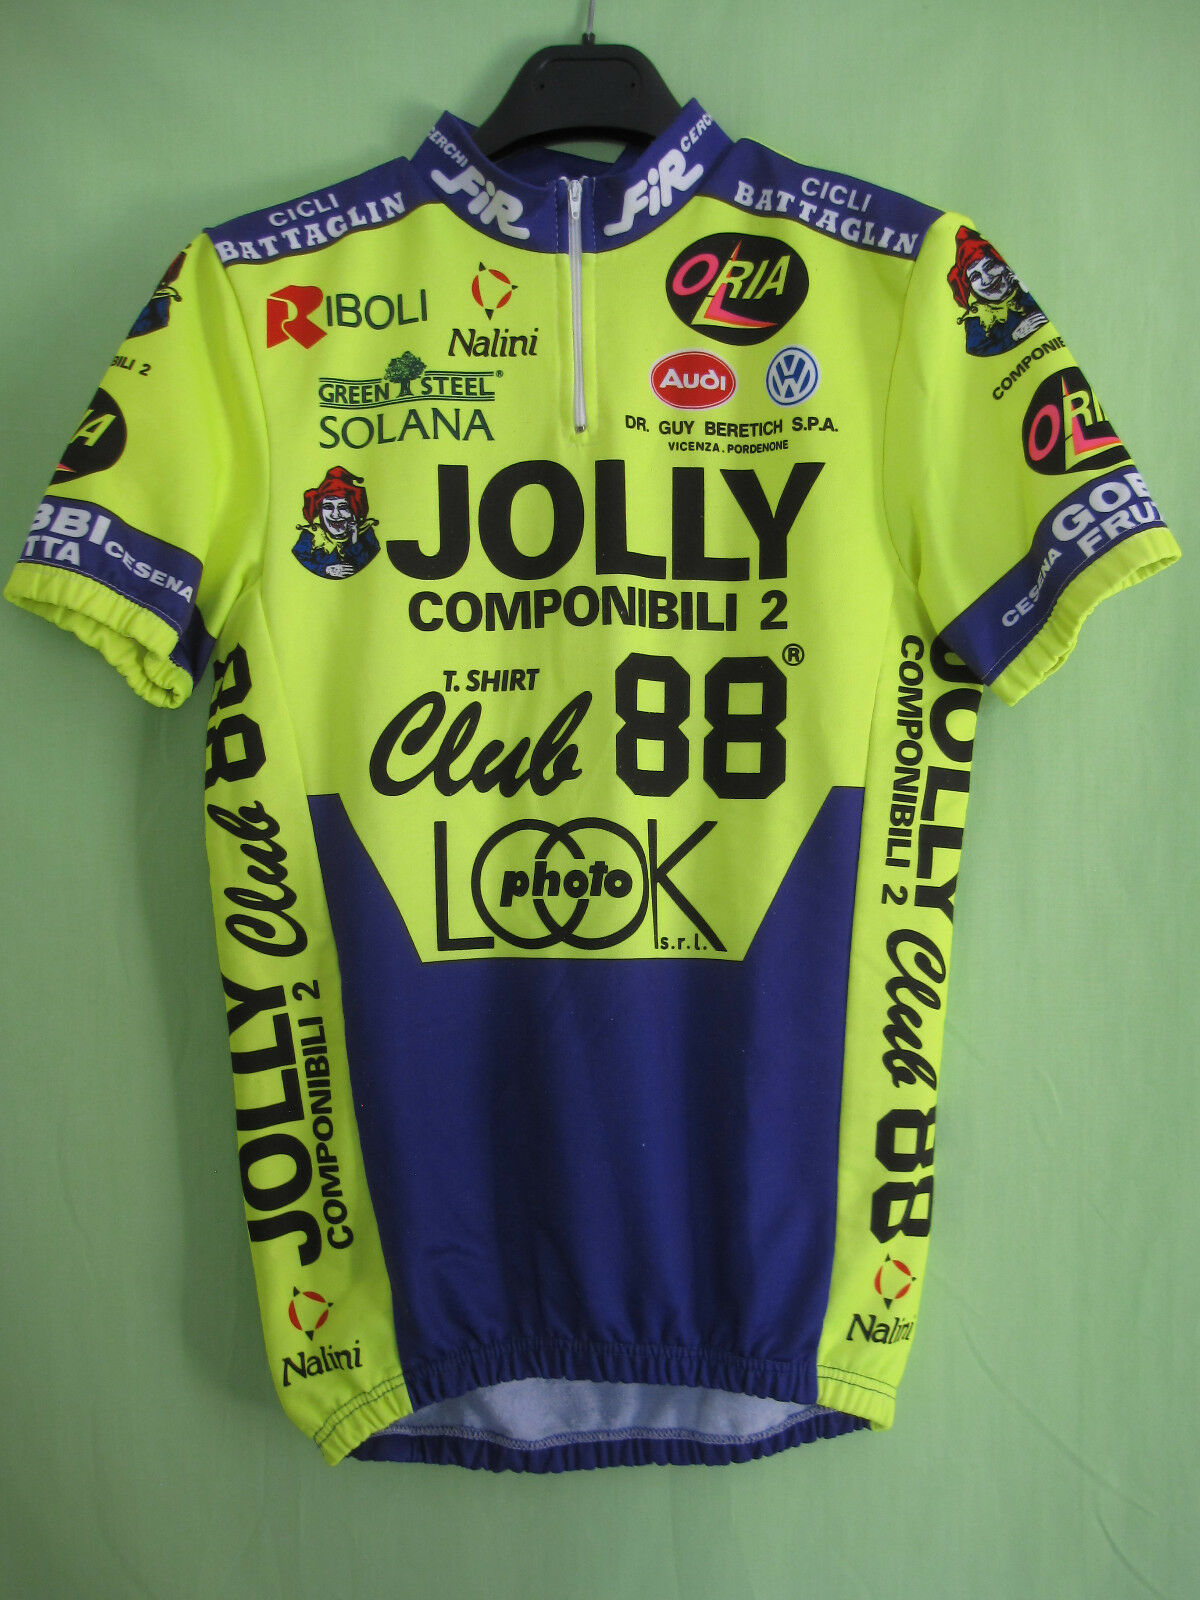 Maillot cycliste JOLLY COMPONINILI CLUB 88 Nalini Tour de France 1991 BE - M